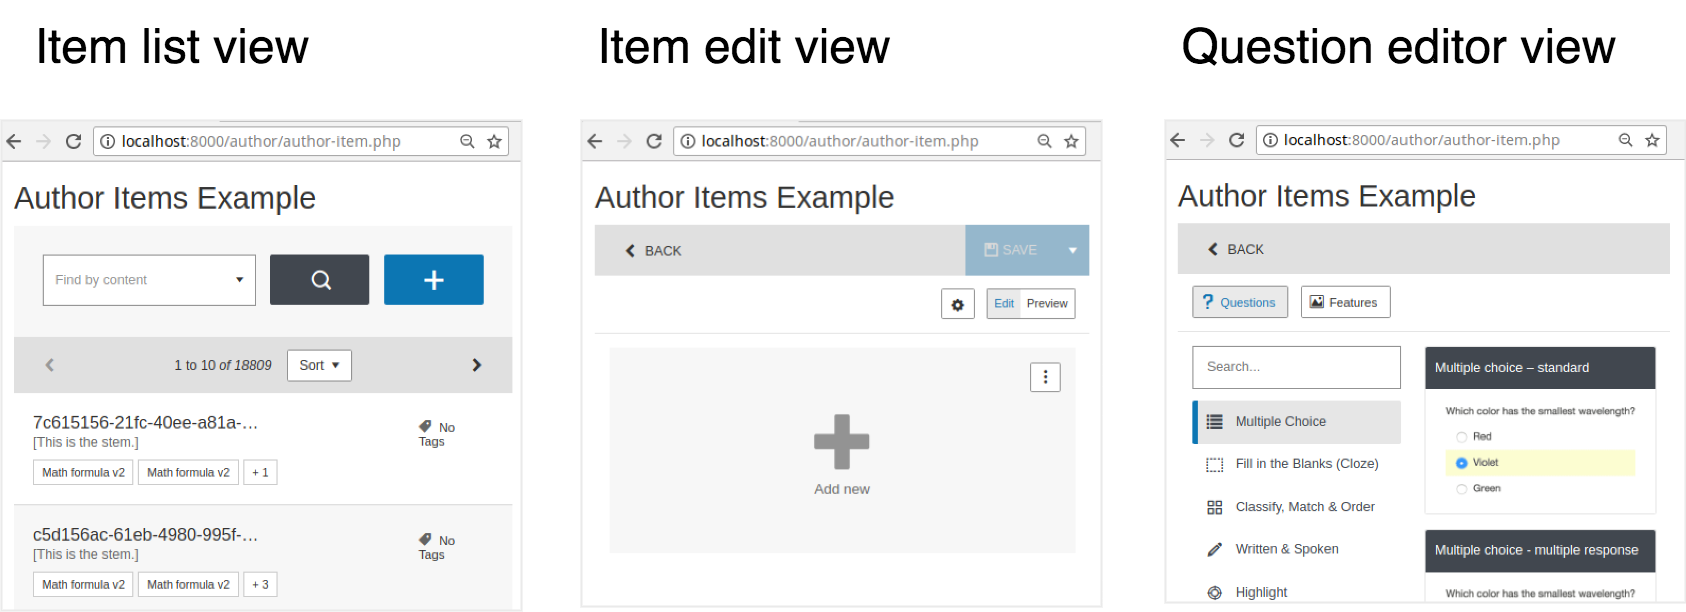 Workflow for authoring an Item